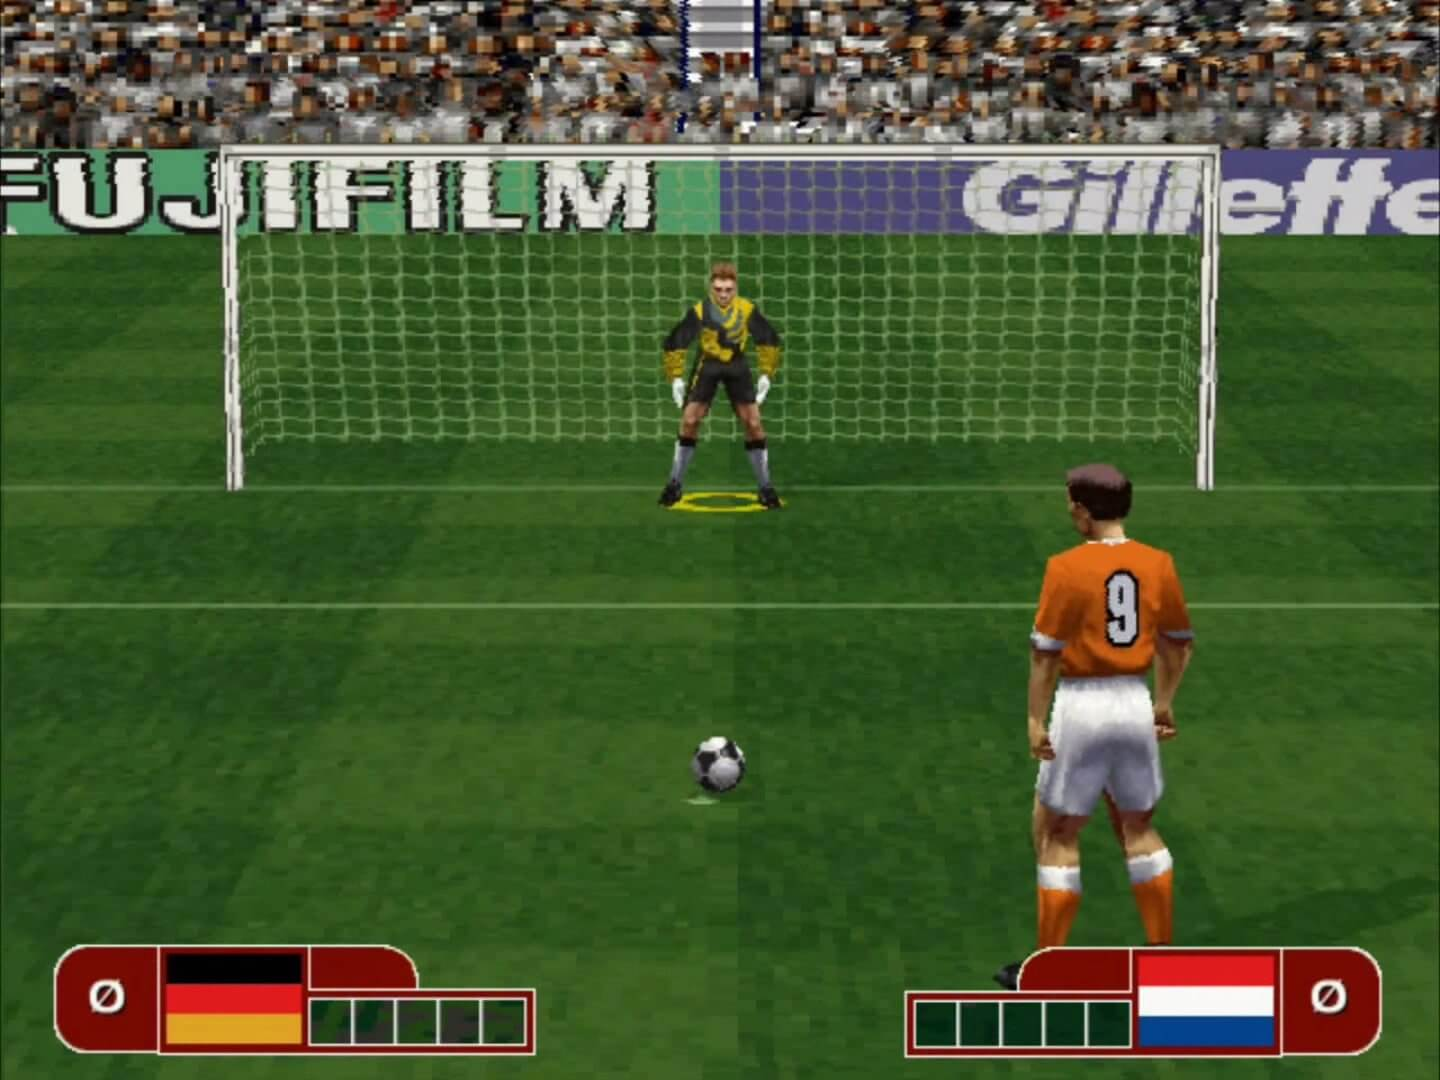 fifa world cup 2002 game download full version